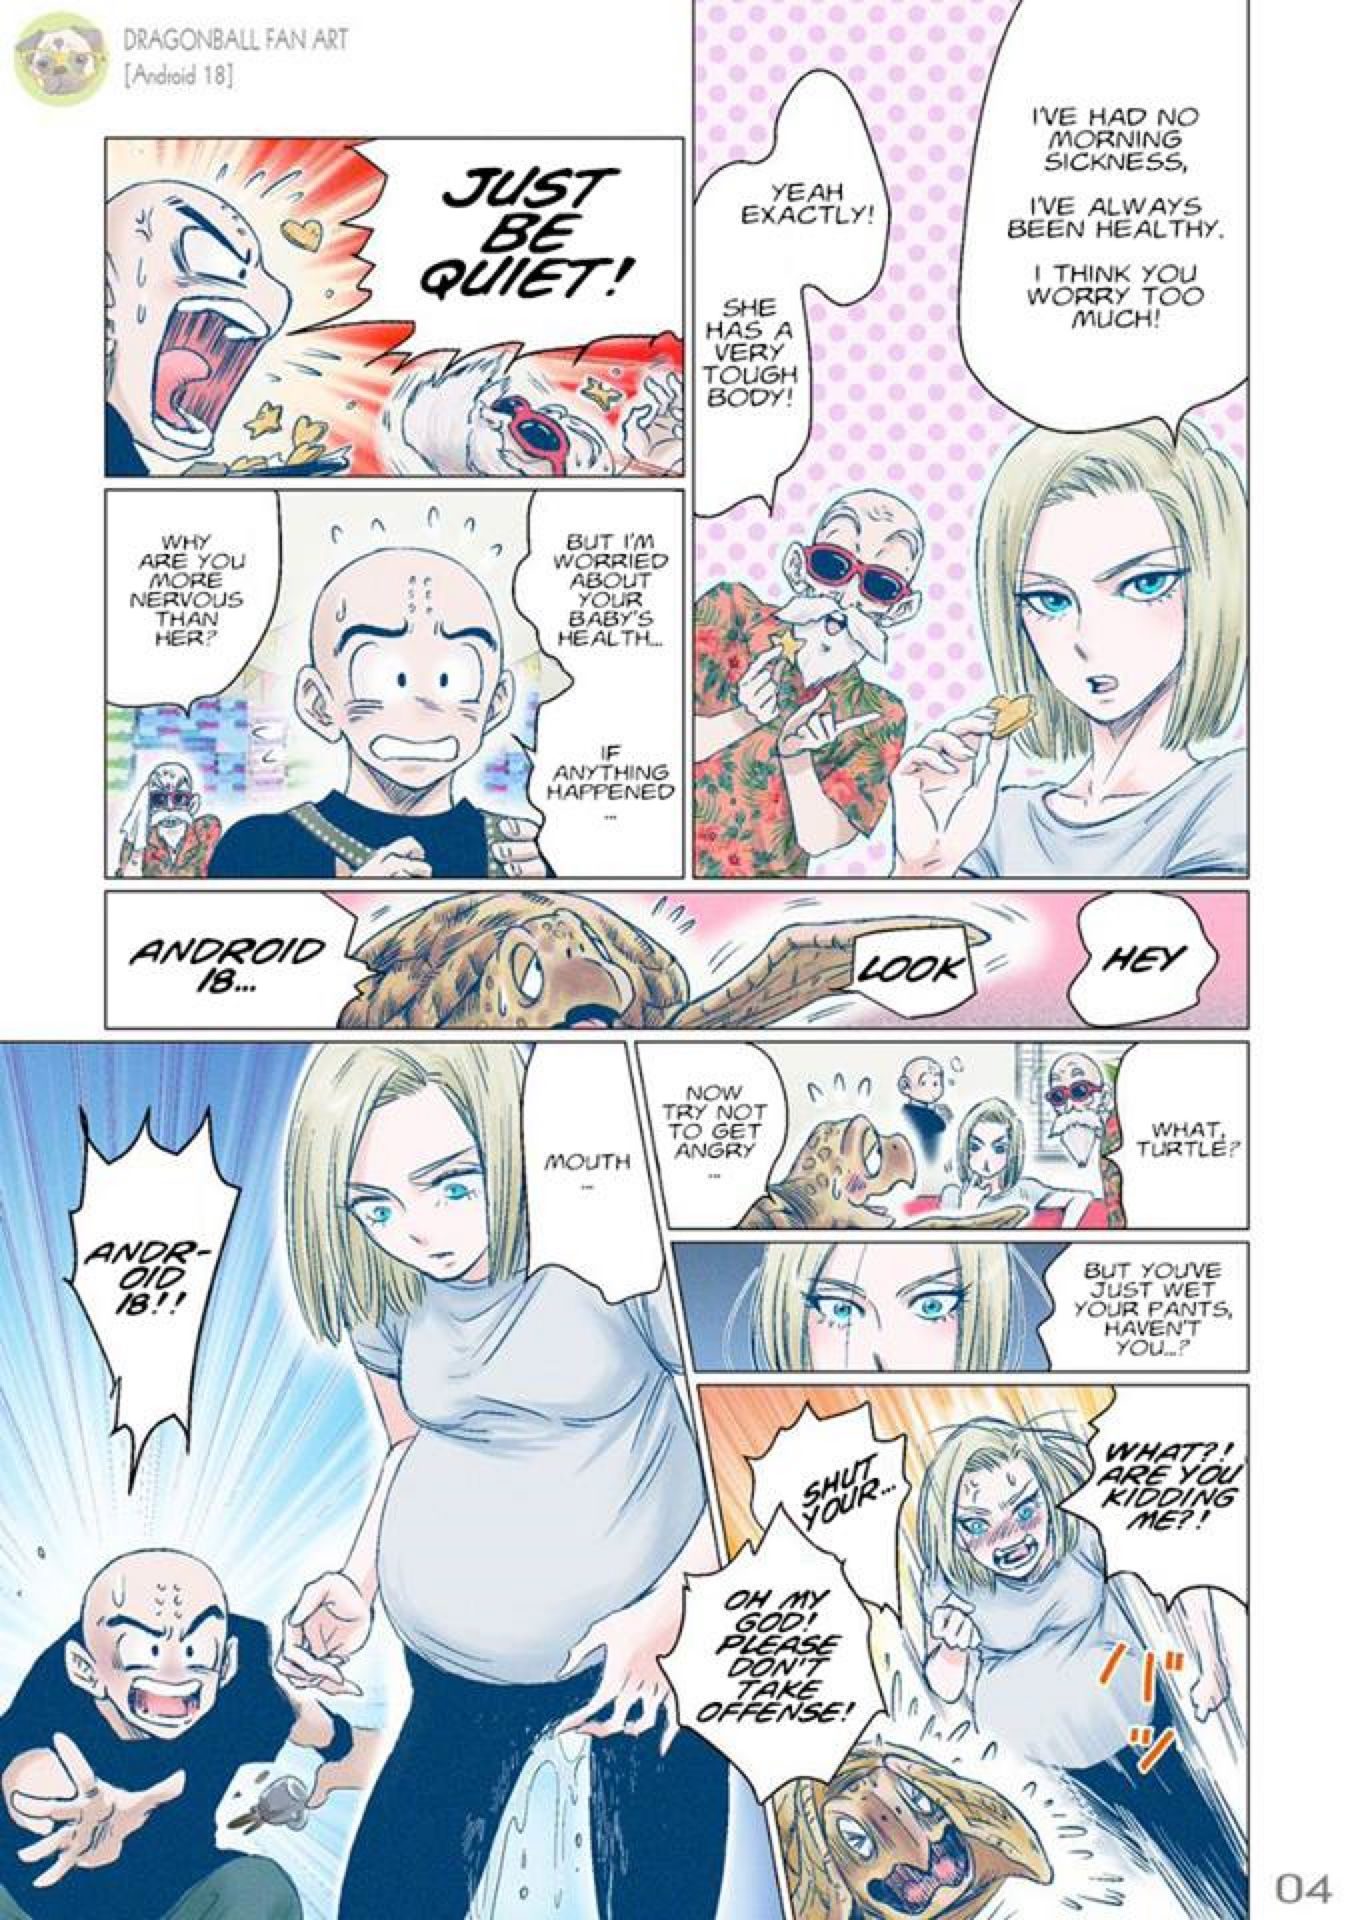 How Can Android 18 Have A Baby : android, Dragonball